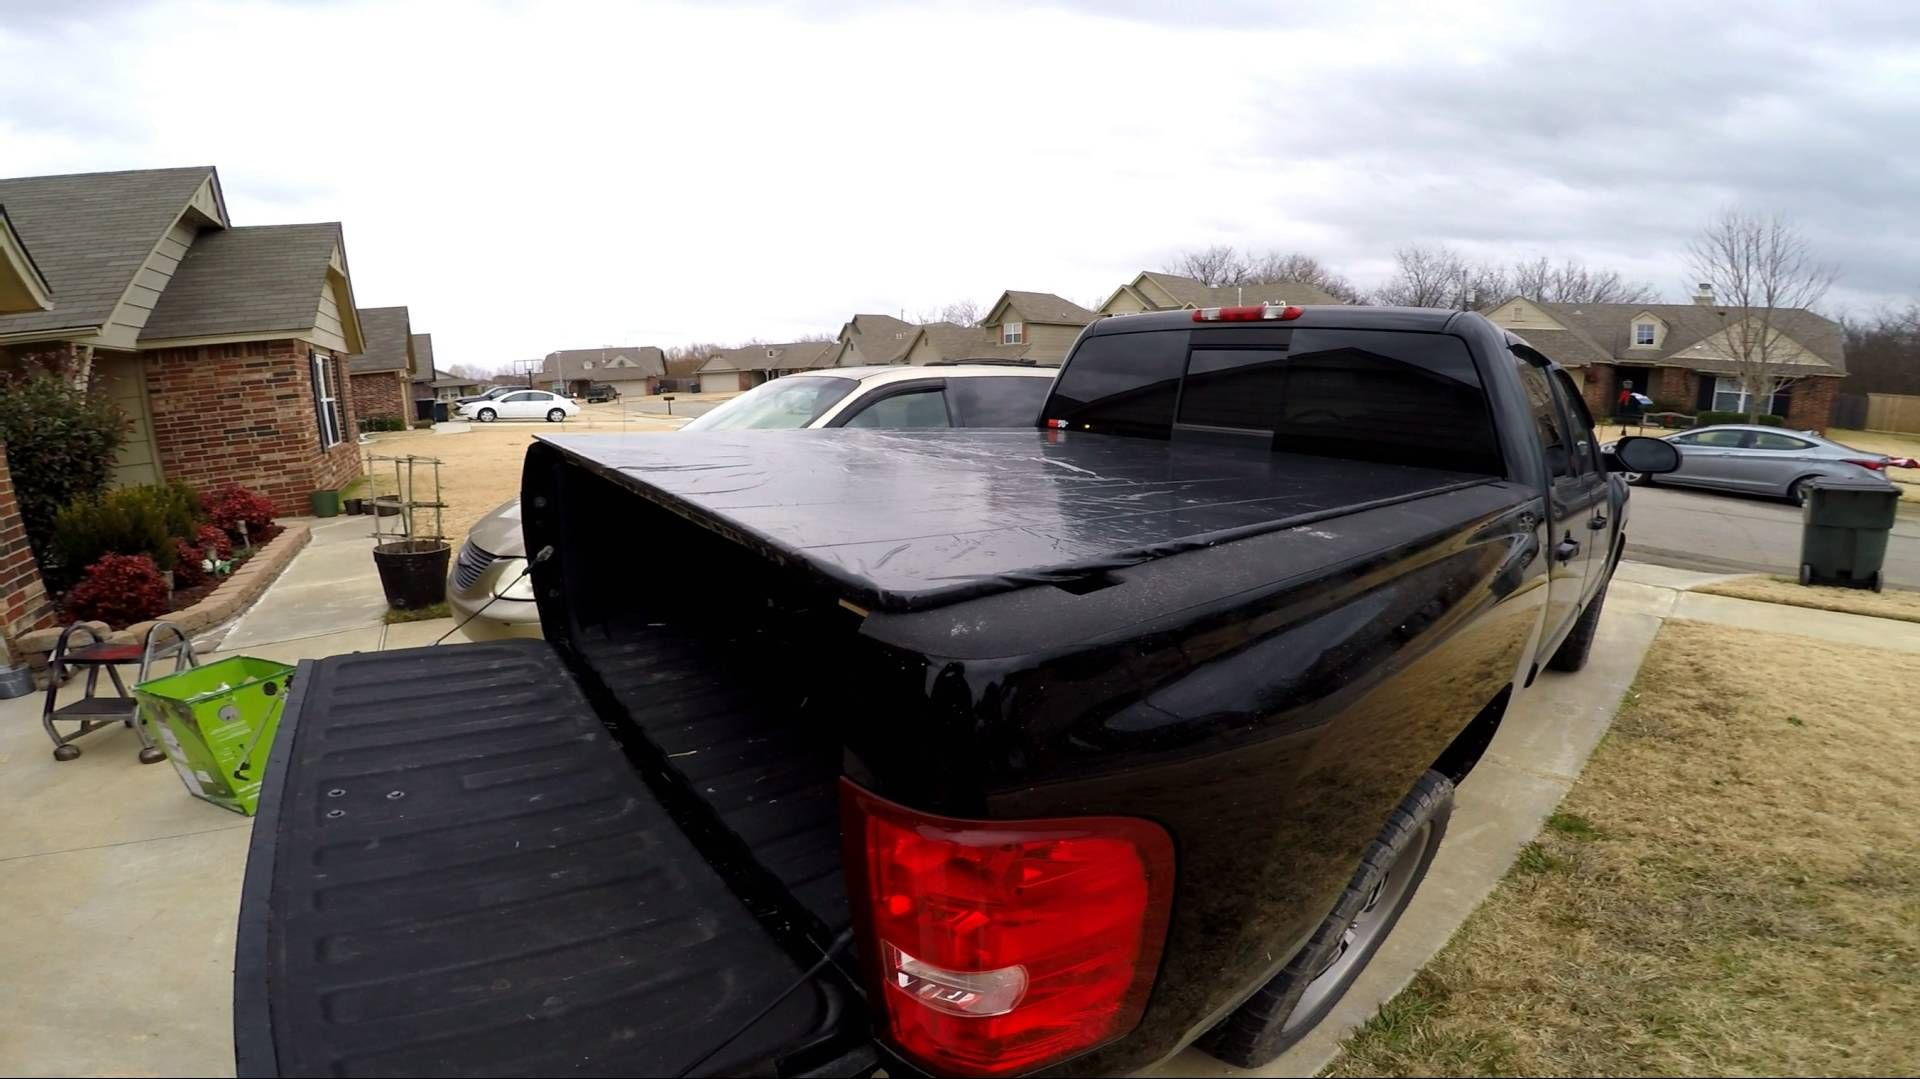 diy how to build a truck bed cover | truck ideas | pinterest | truck